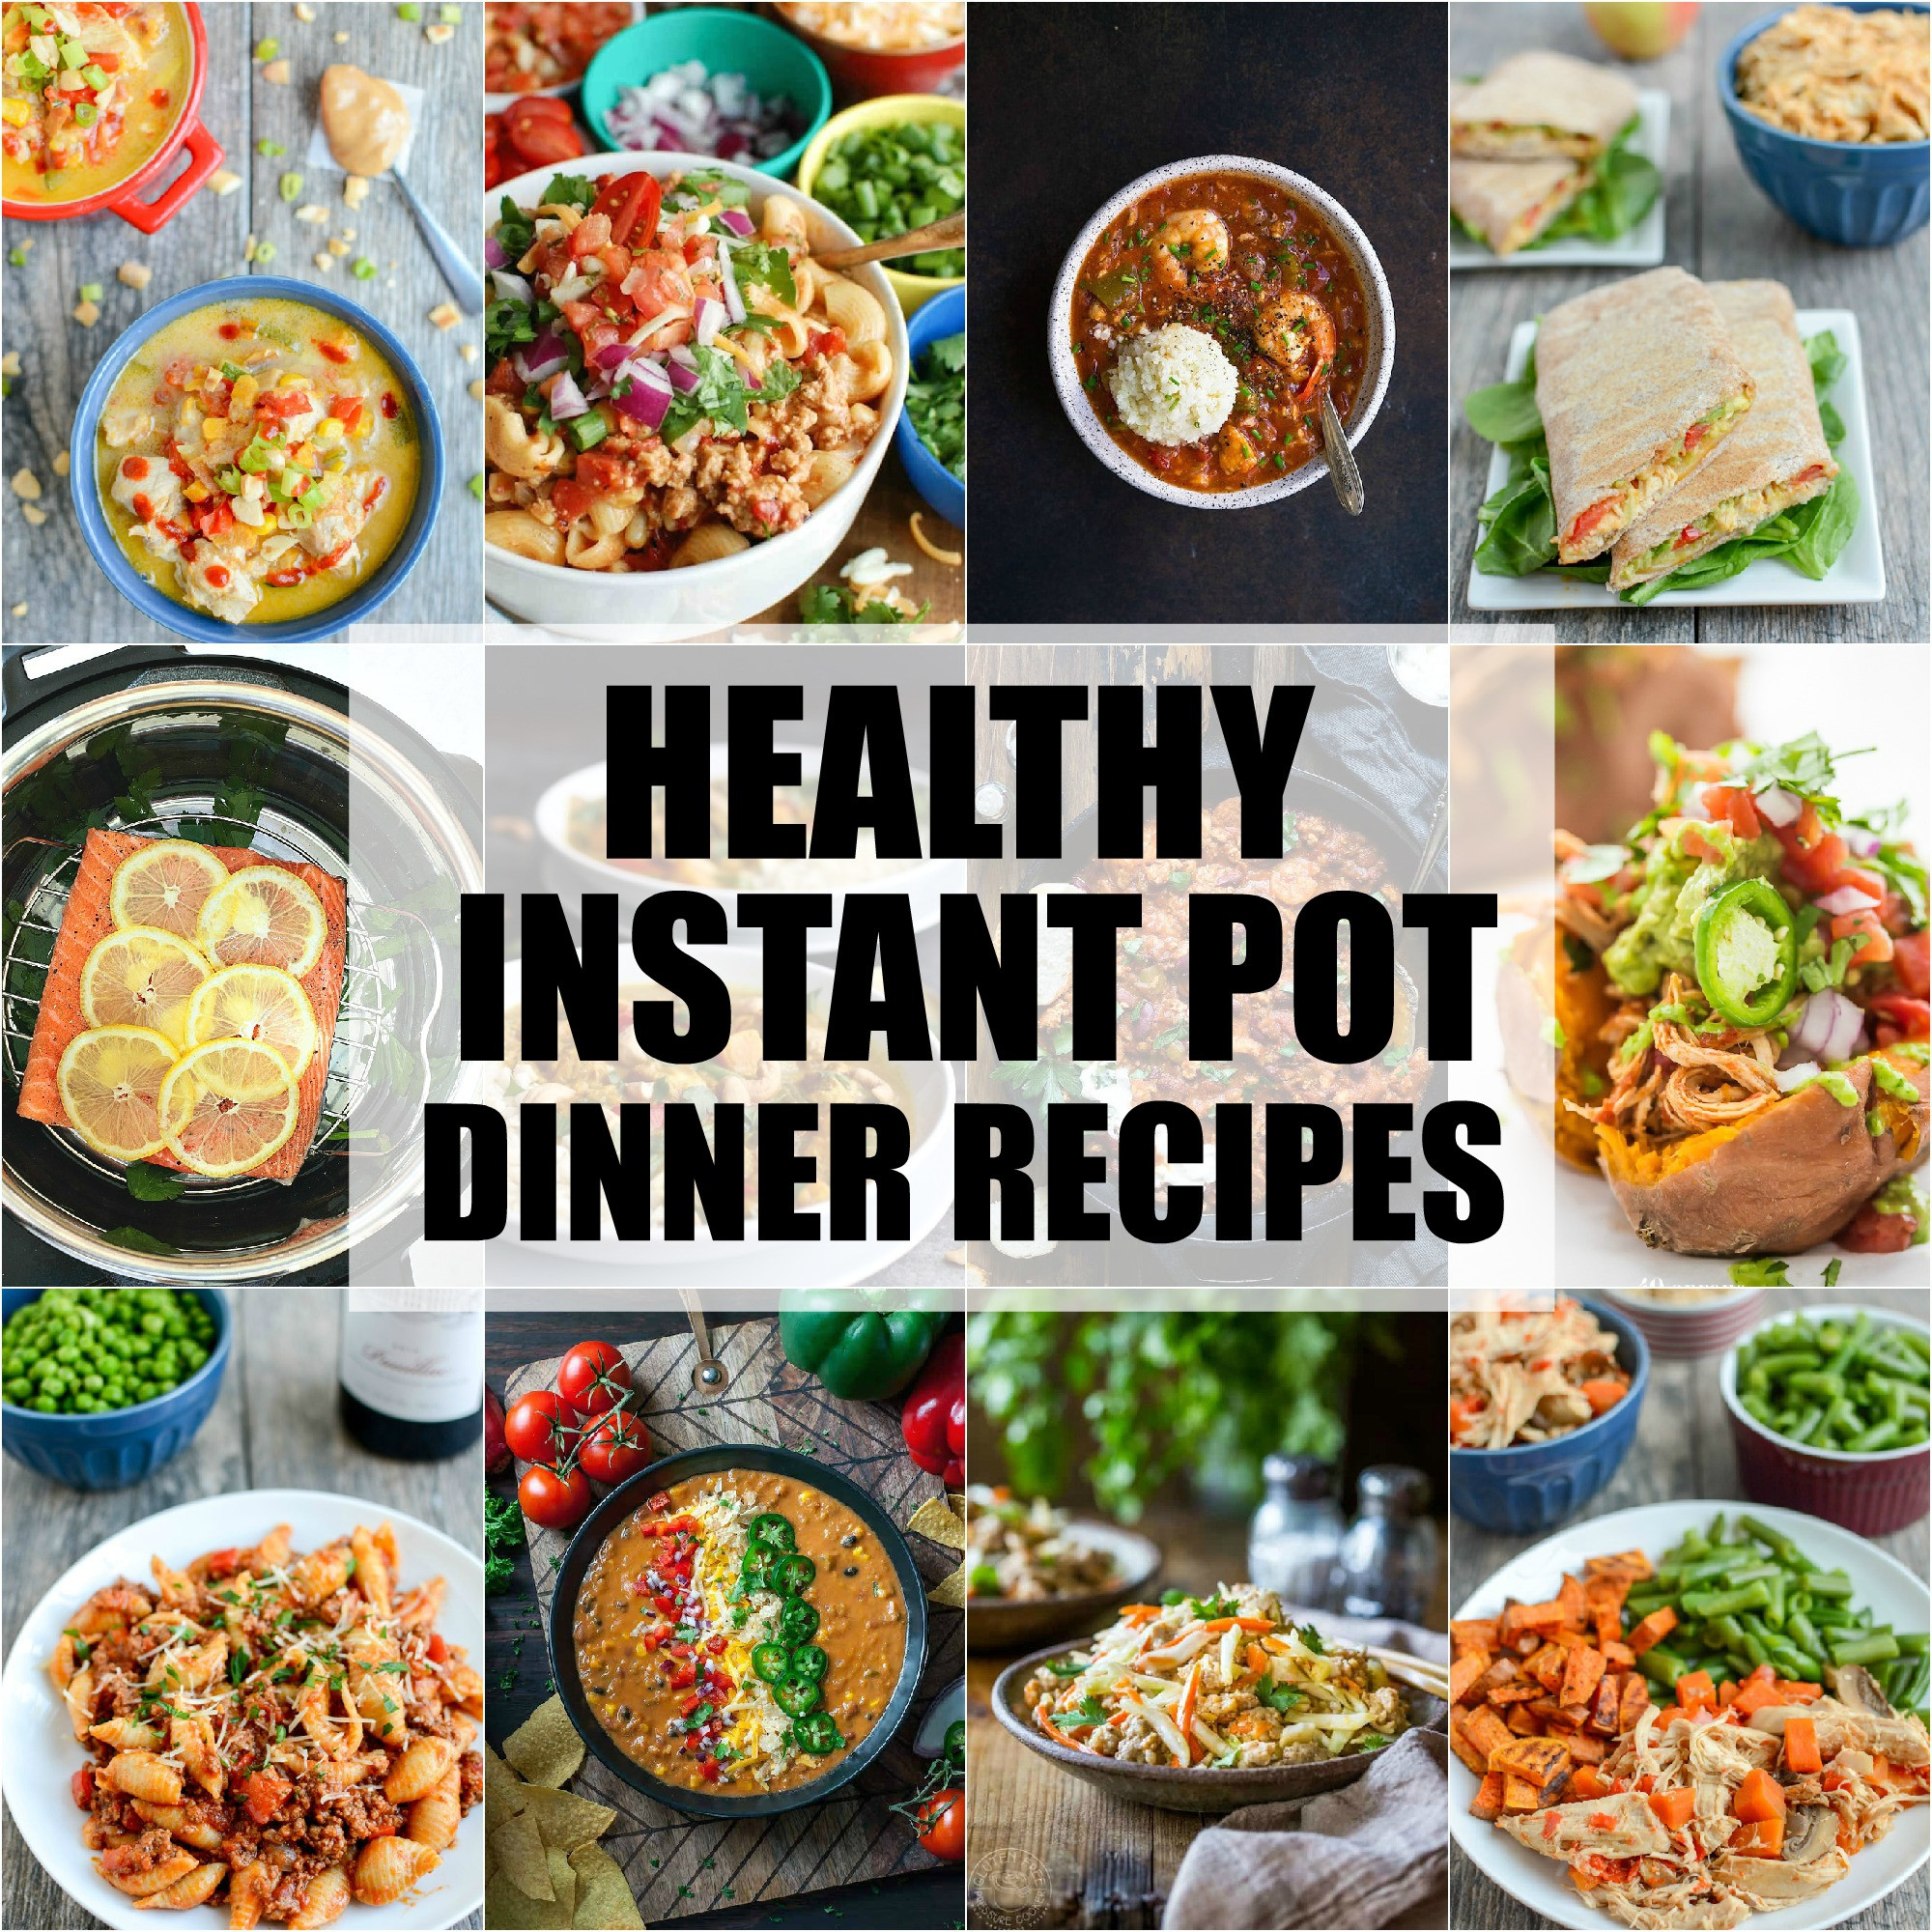 Healthy Instant Pot Recipes  Healthy Instant Pot Dinner Recipes